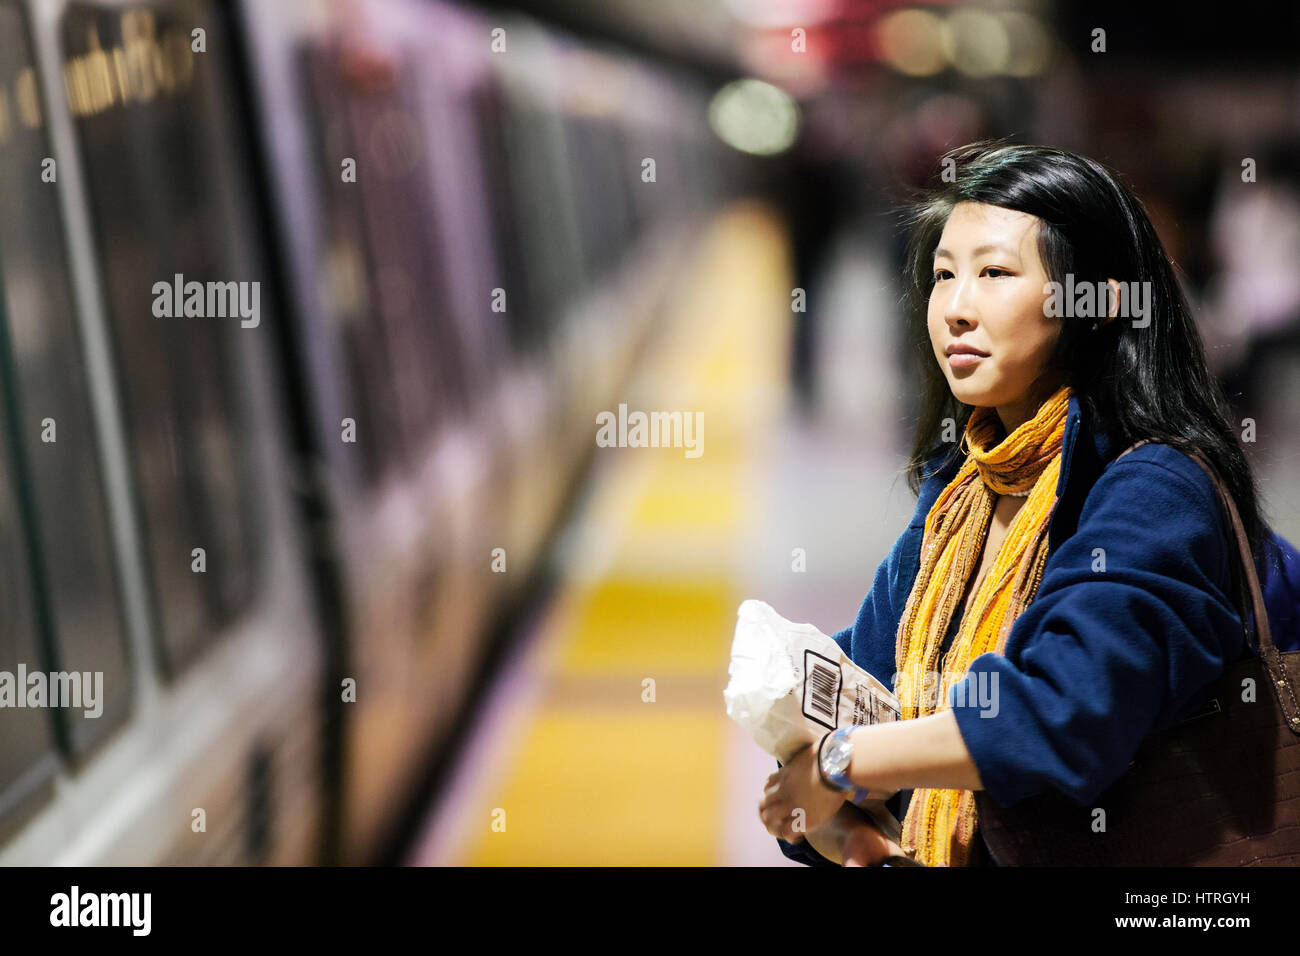 Woman waiting for the subway. - Stock Image